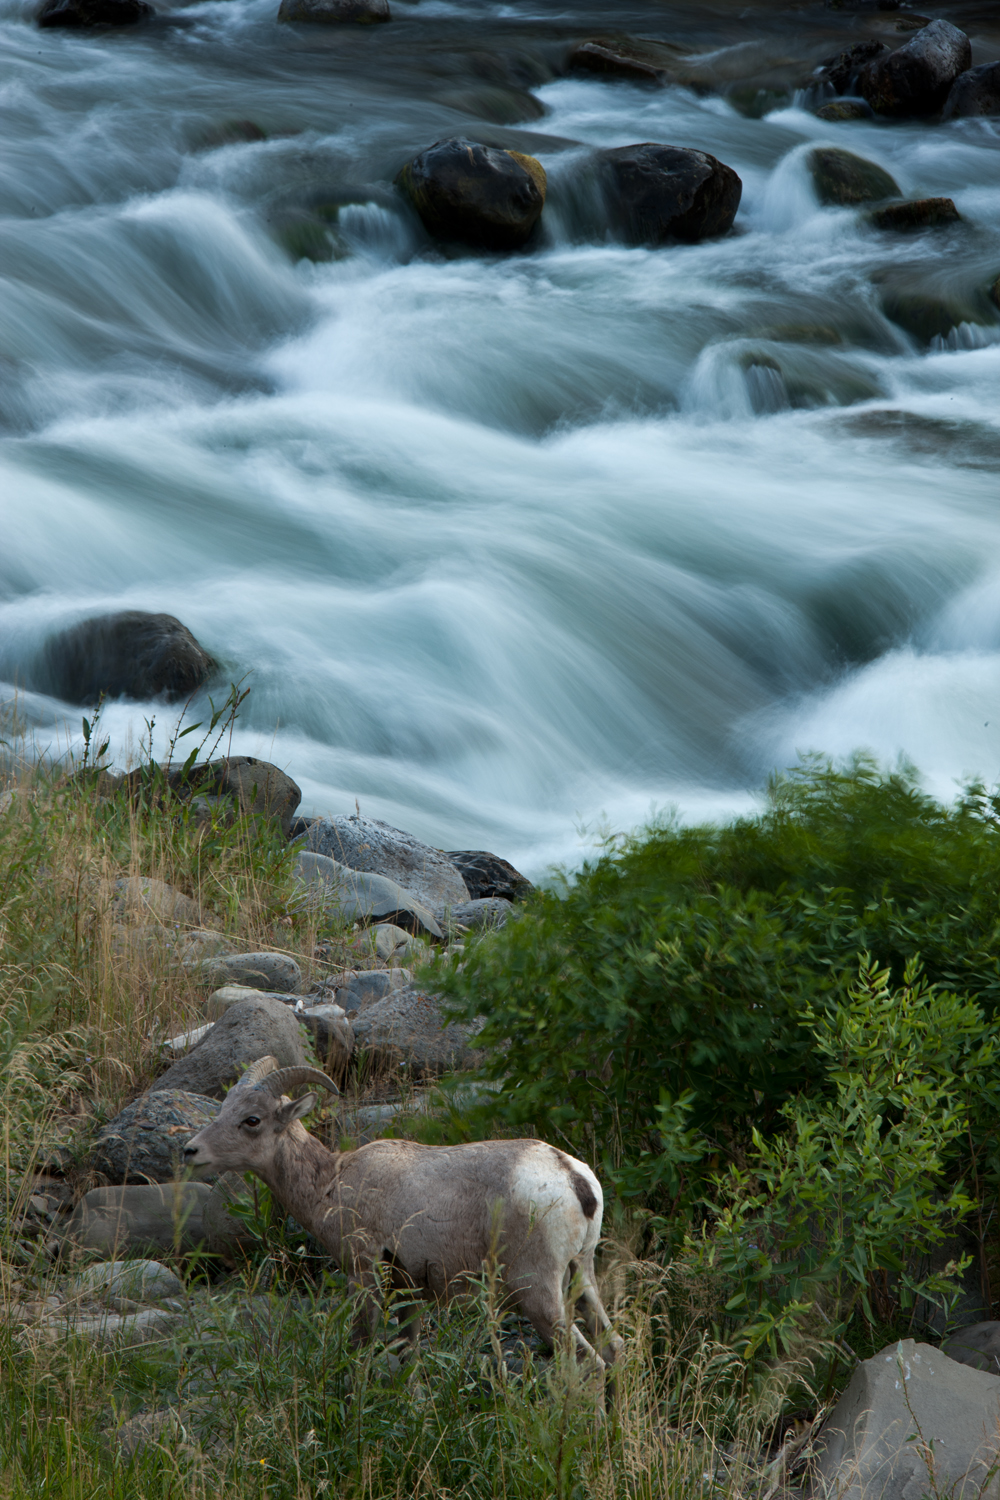 Big Horn Sheep We normally use fast shutter speeds for photographing wildlife, freezing water motion in doing so. Using a slow speed gave an entirely different look, although I had to shoot several .8 second exposures before the big horn stood still long enough for one to work.